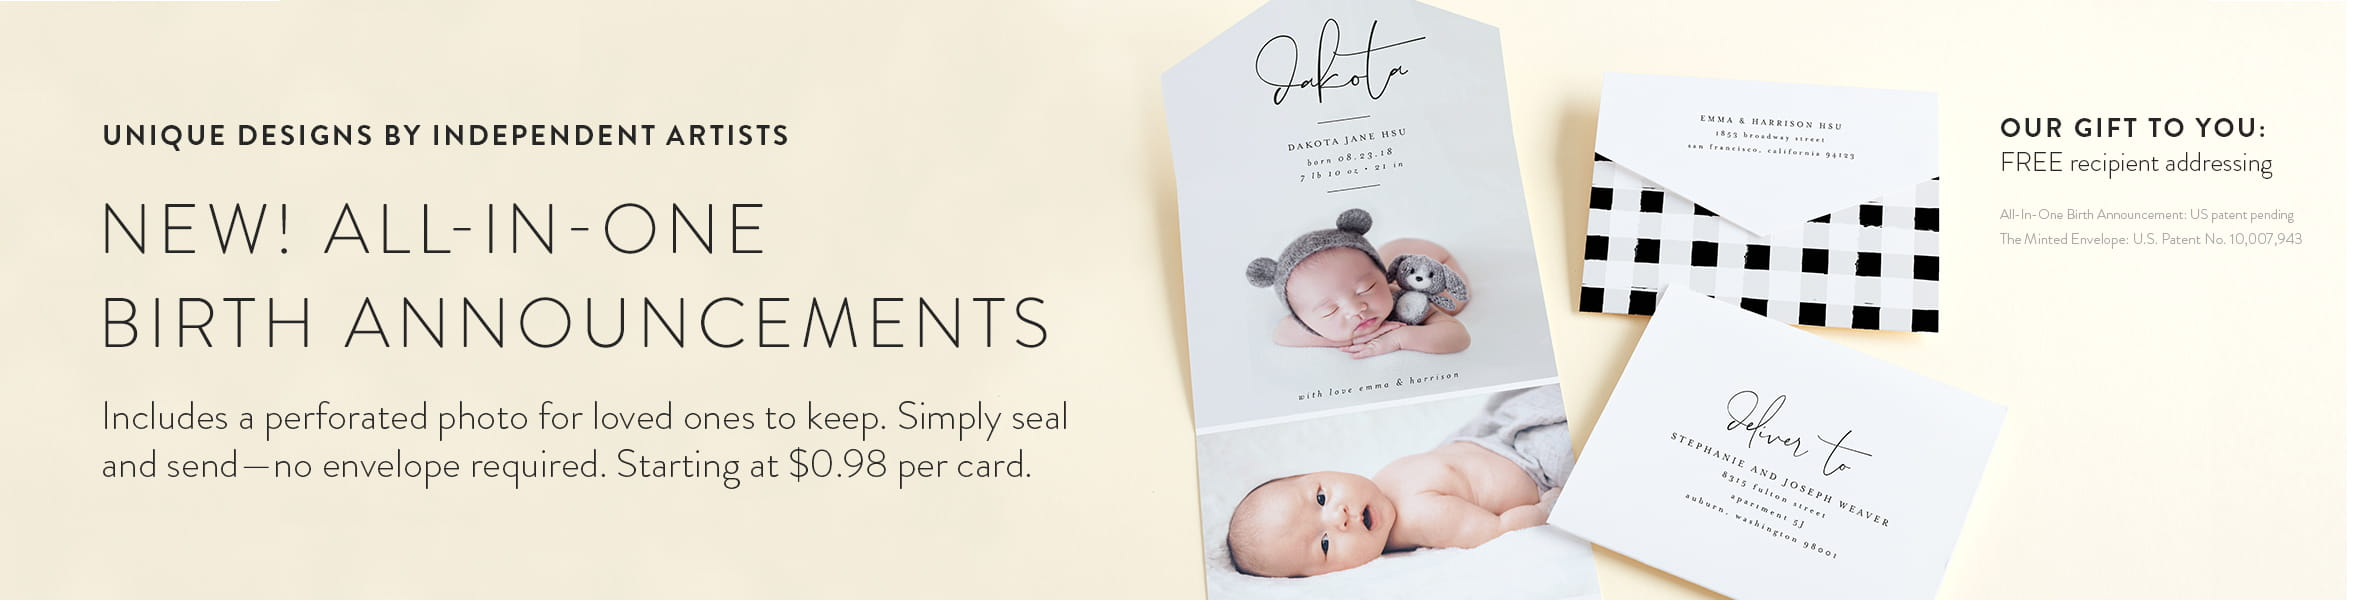 All-in-One Birth Announcements